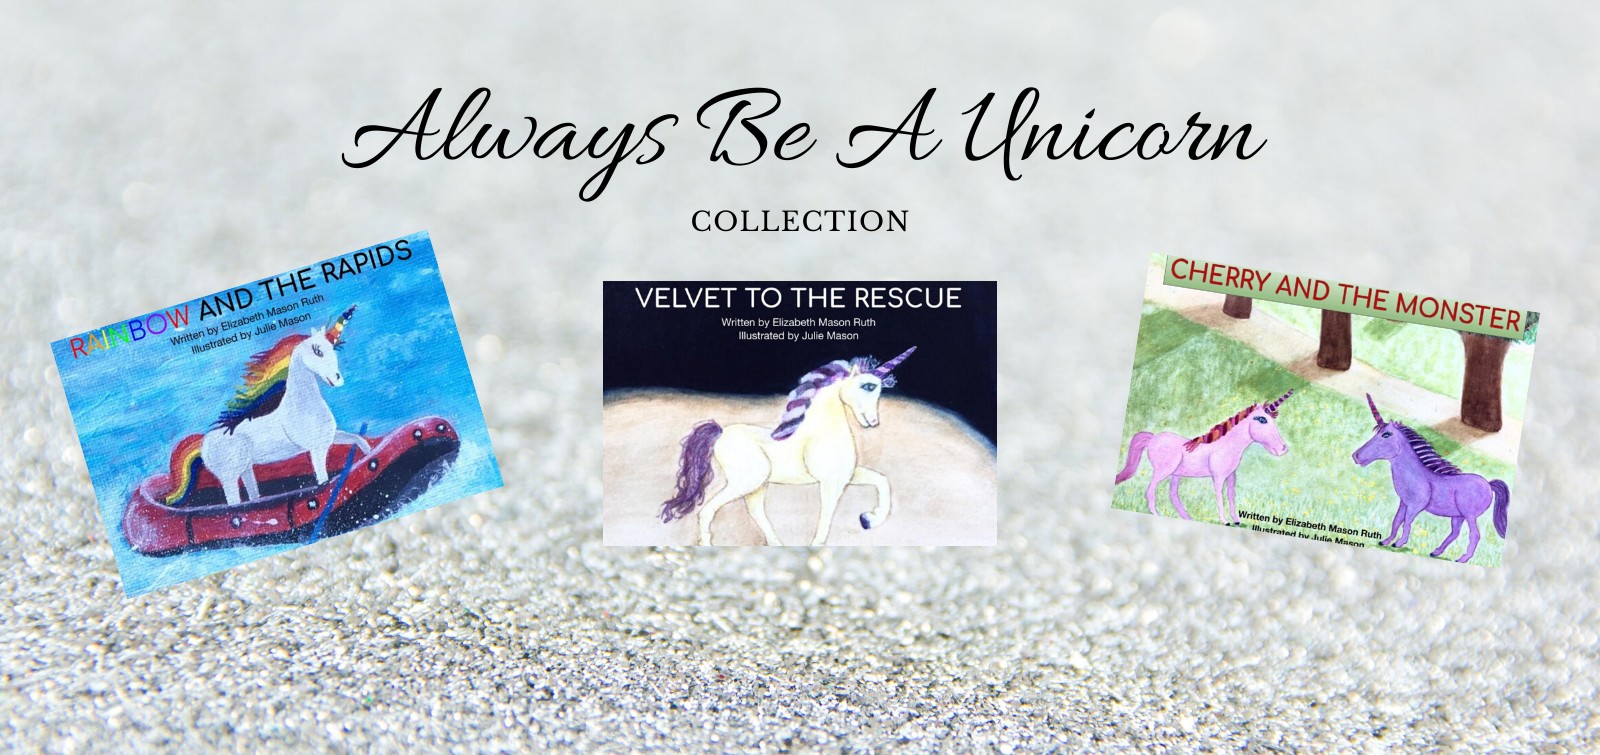 2019 11 always be a unicorn collection books - website slider 1600 x 755